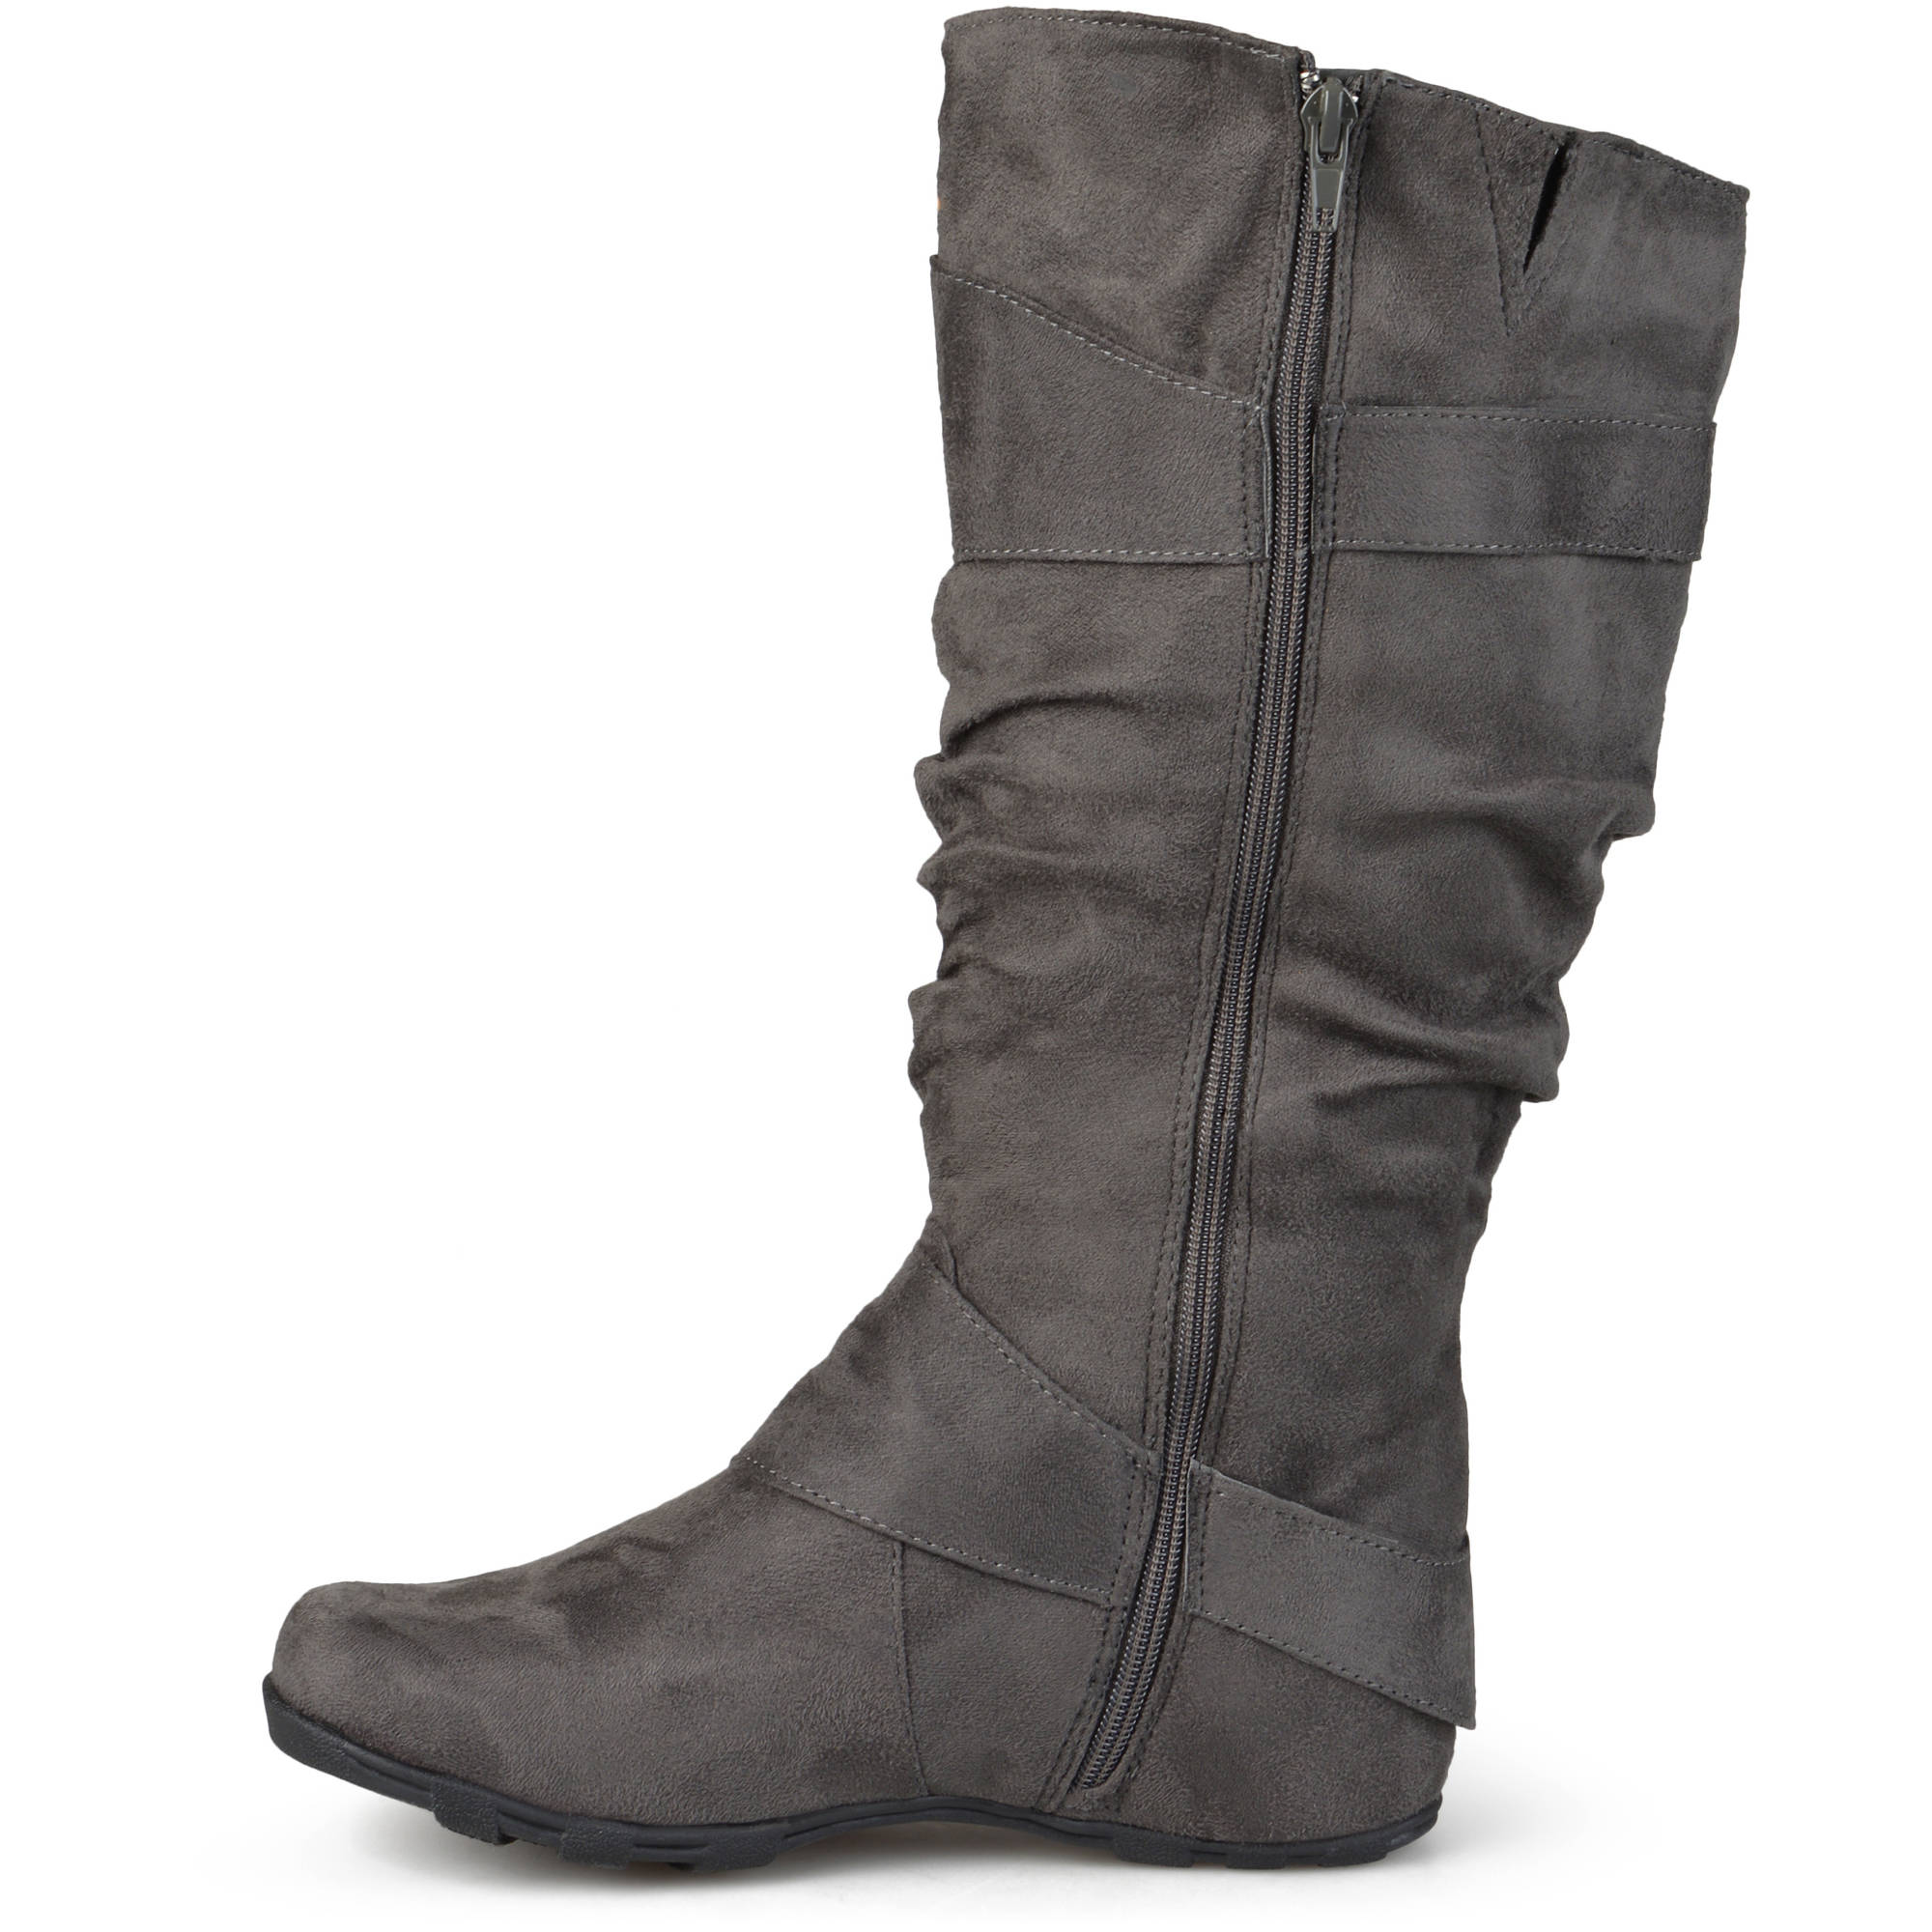 e68105e80ad5c Details about Women s Slouchy Wide Calf Boots